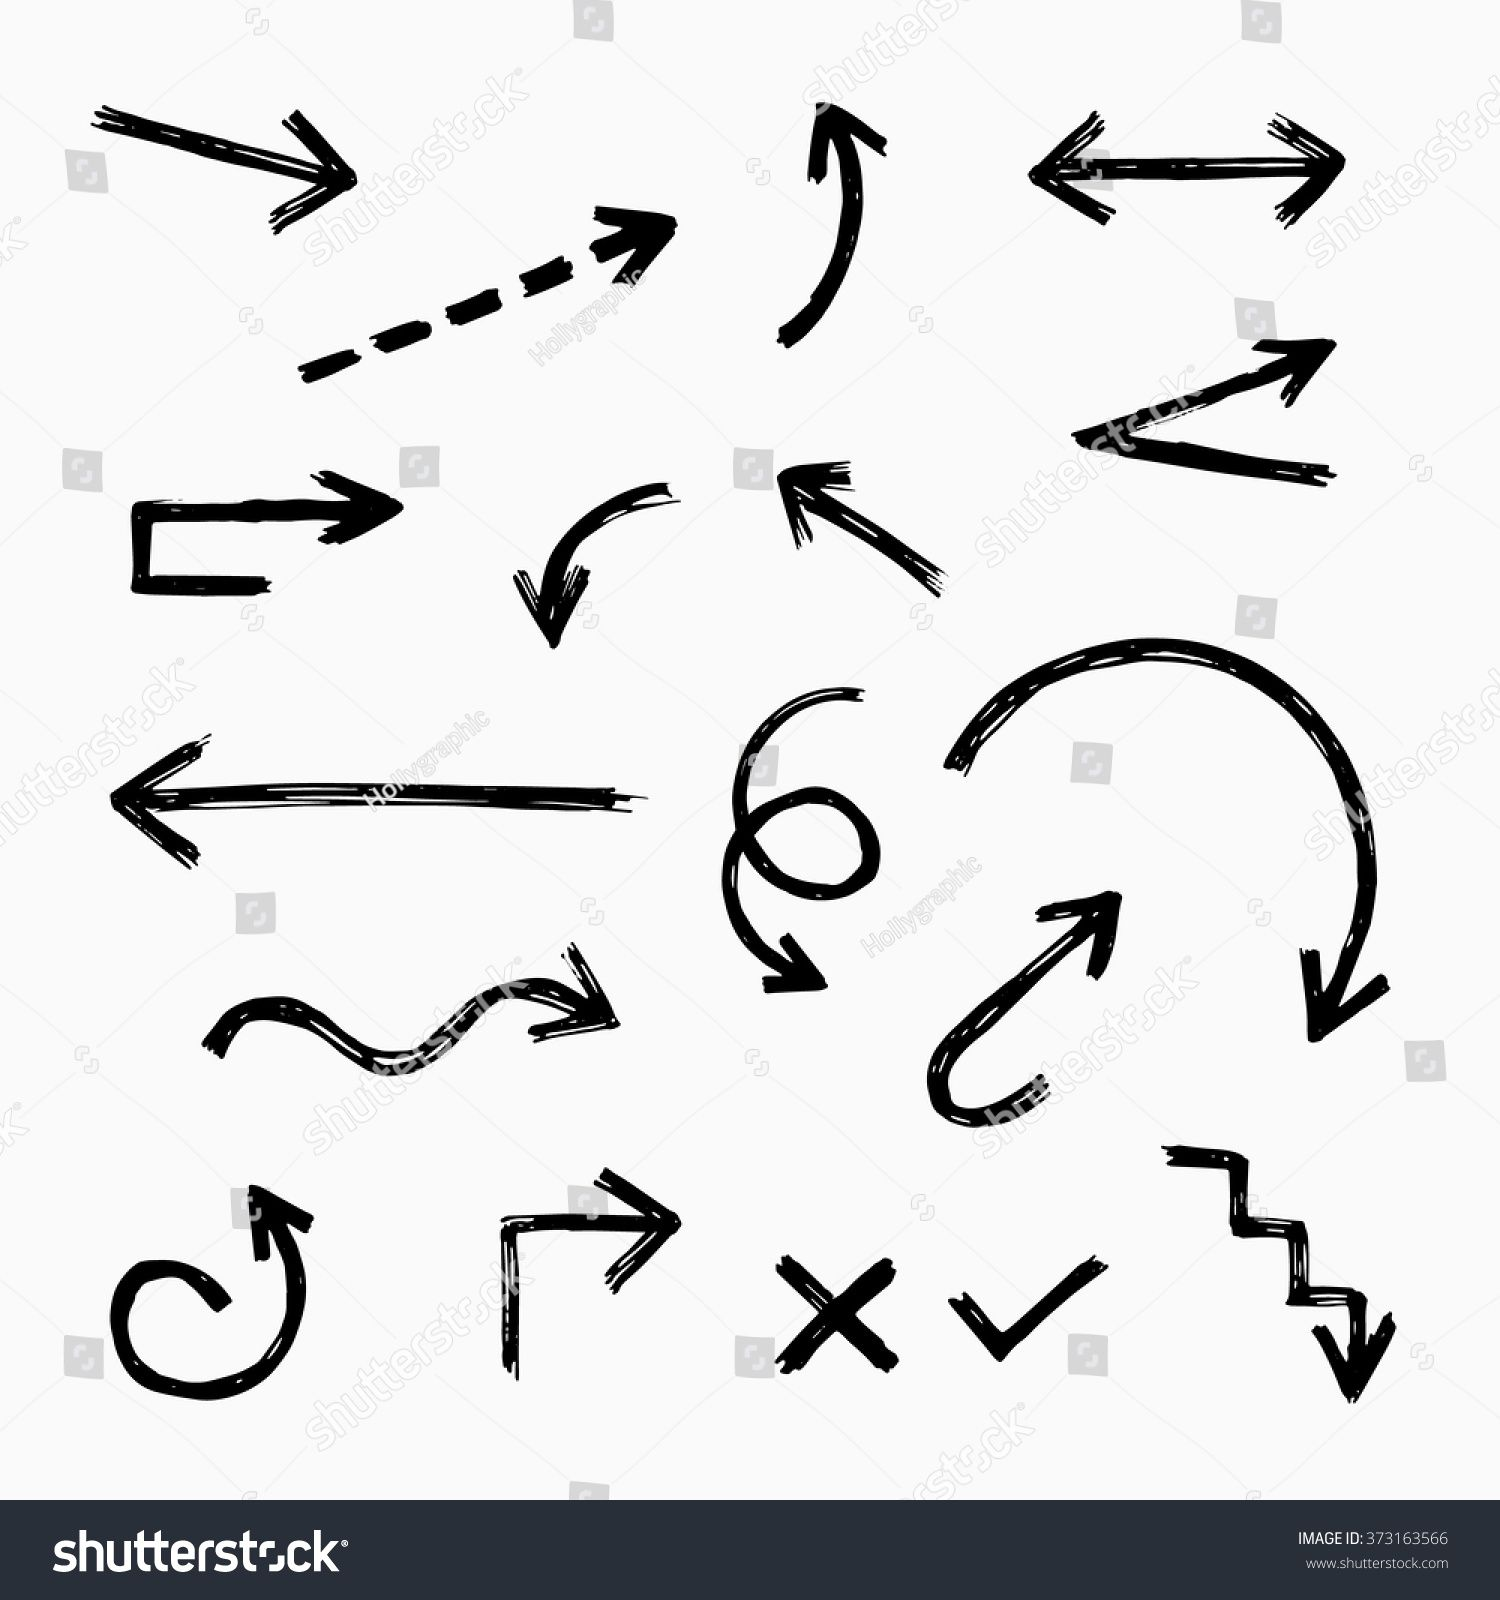 Hand Drawn Arrow Set Collection Of Black Direction Pencil Sketch Symbols Vector Illustration Graphic D How To Draw Hands Hand Drawn Arrows Lettering Tutorial